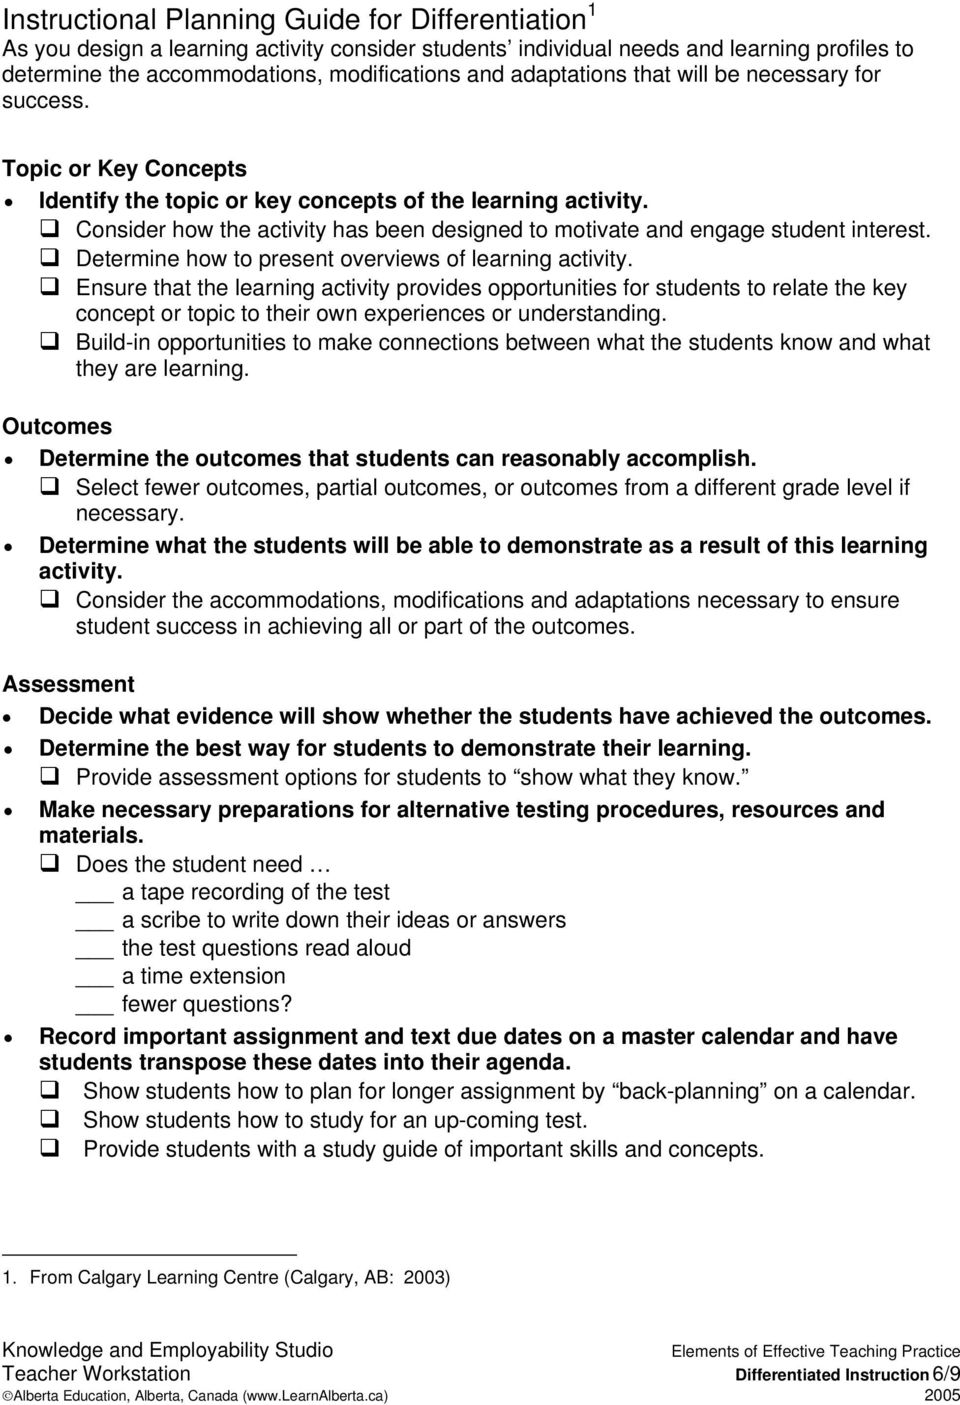 Consider how the activity has been designed to motivate and engage student interest. Determine how to present overviews of learning activity.